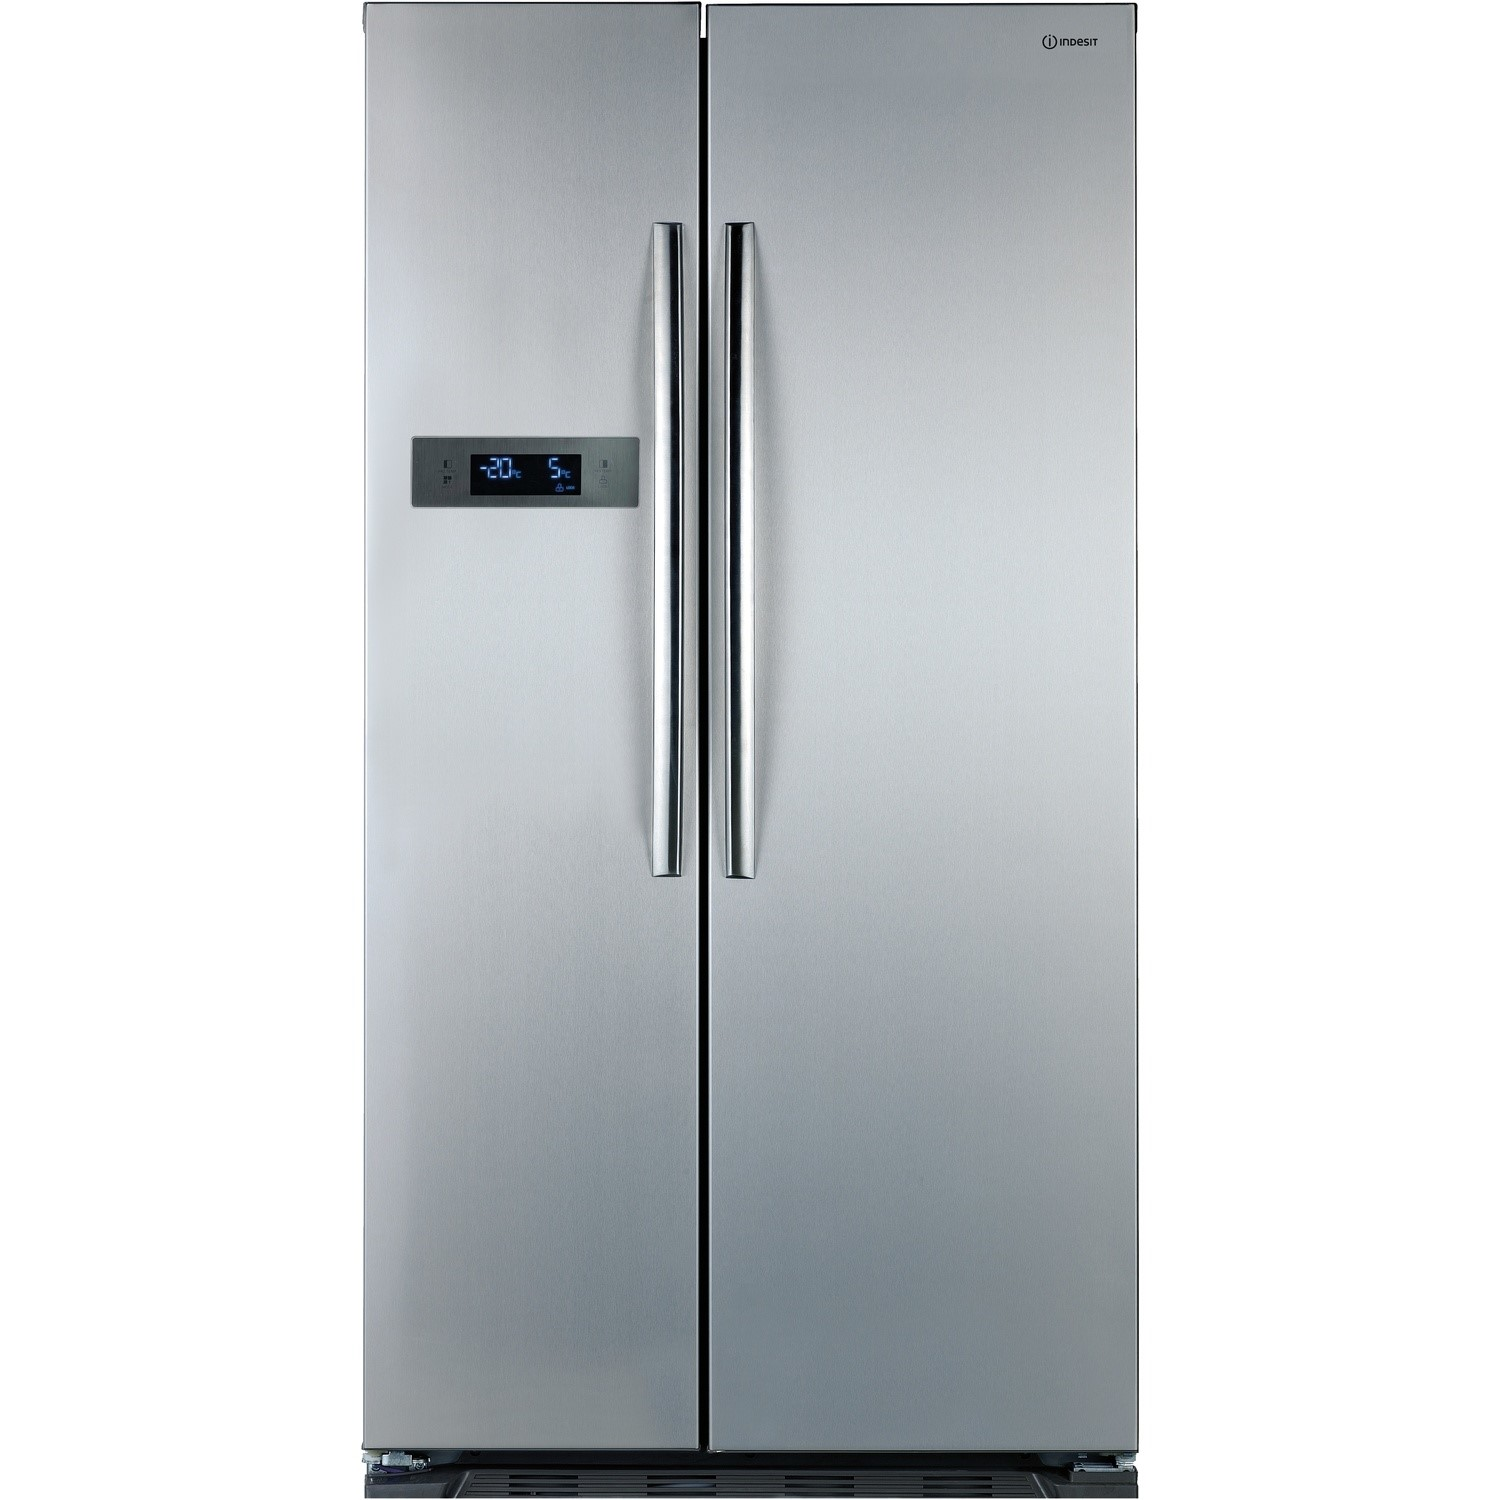 Best Side By Side Fridge >> Indesit SBSAA530SD Silver Side-by-side American Fridge Freezer | Appliances Direct